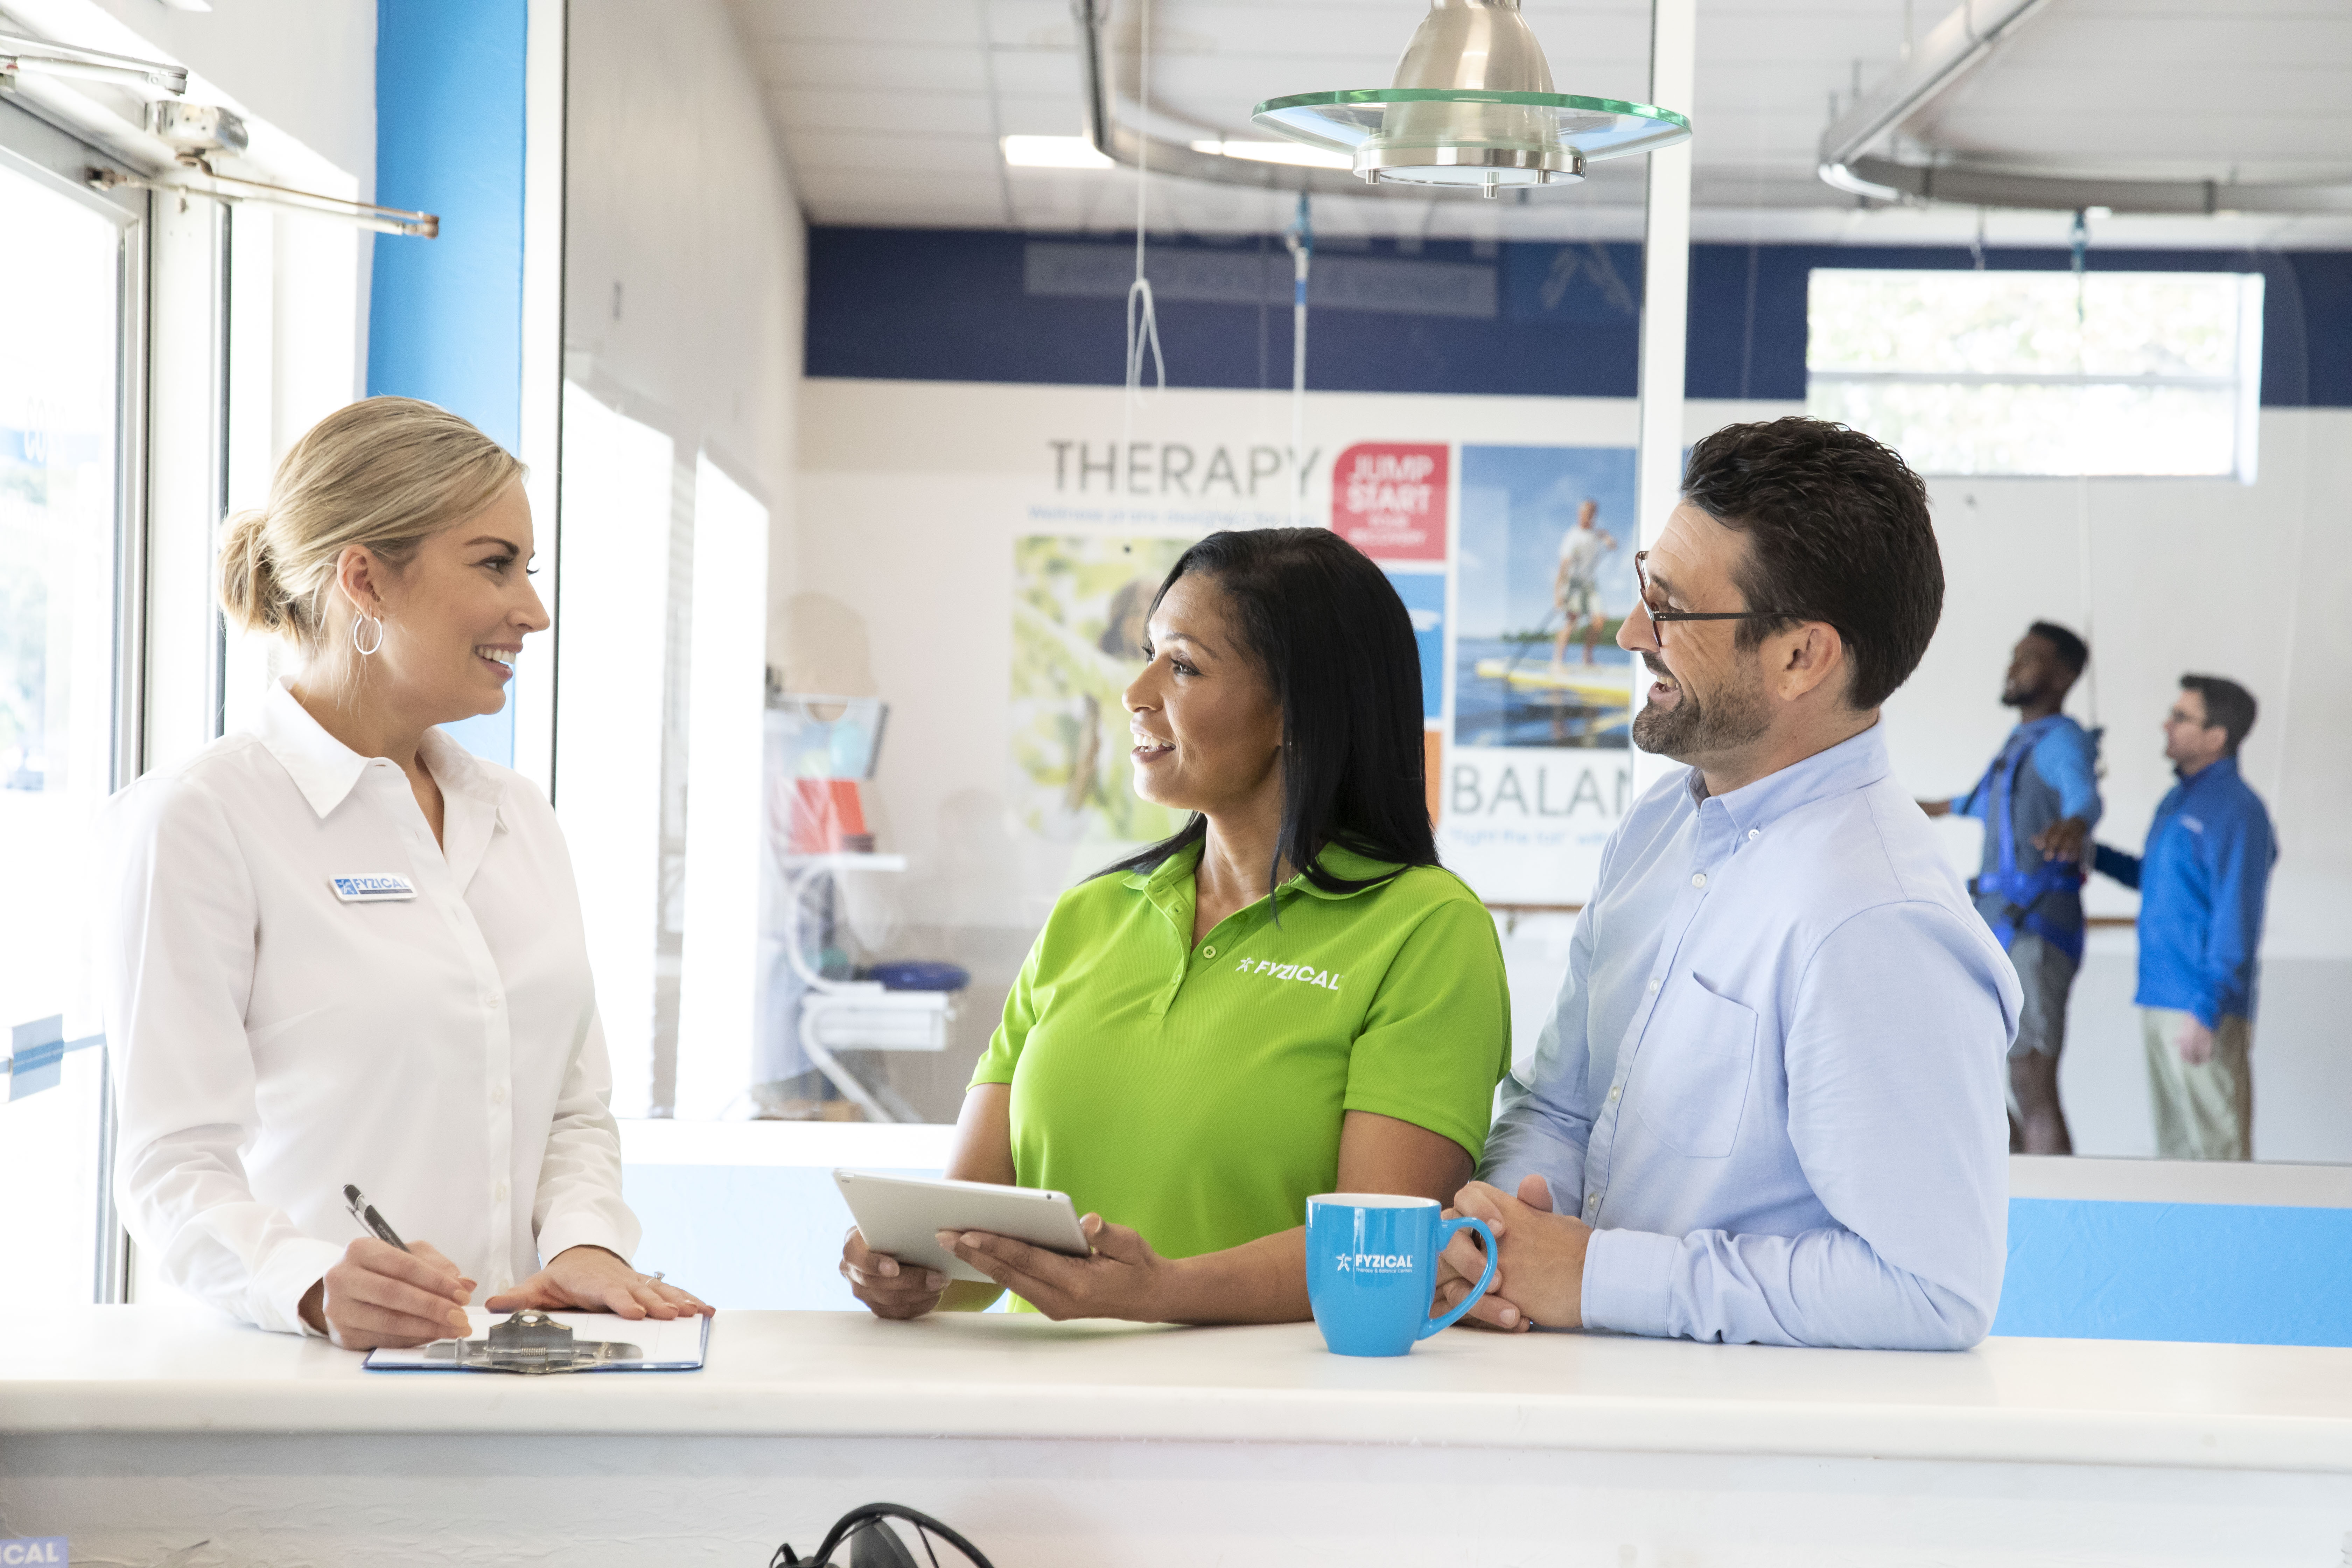 Franchisees Receiving Assistance From FYZICAL Support Staff Member